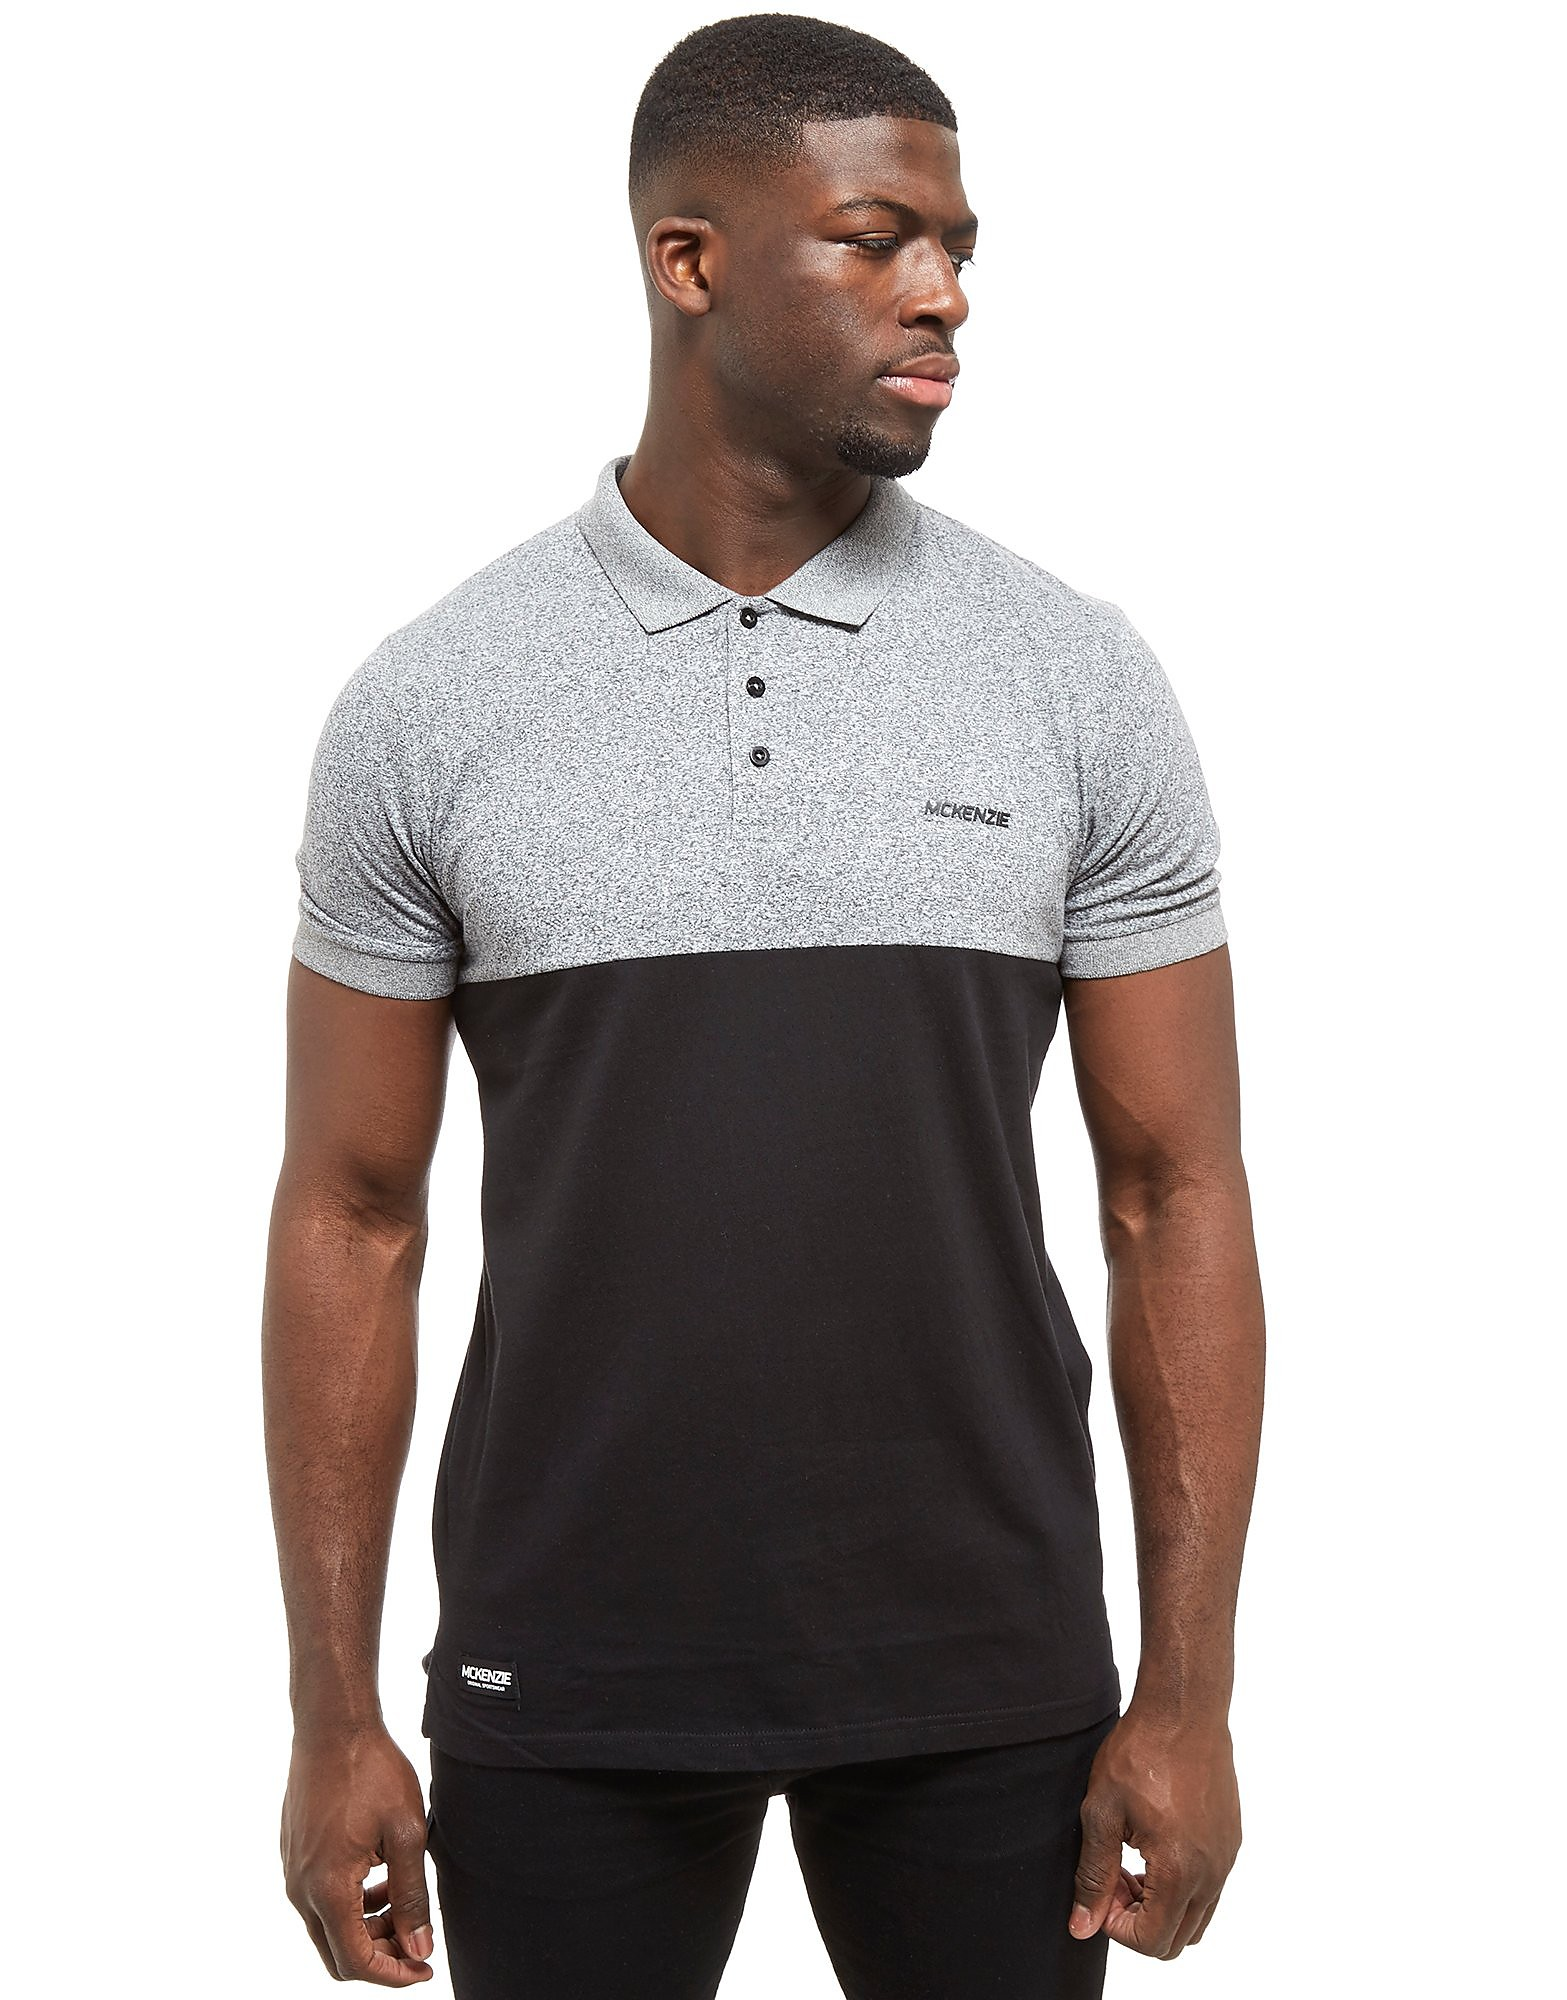 McKenzie Maverick Polo Shirt